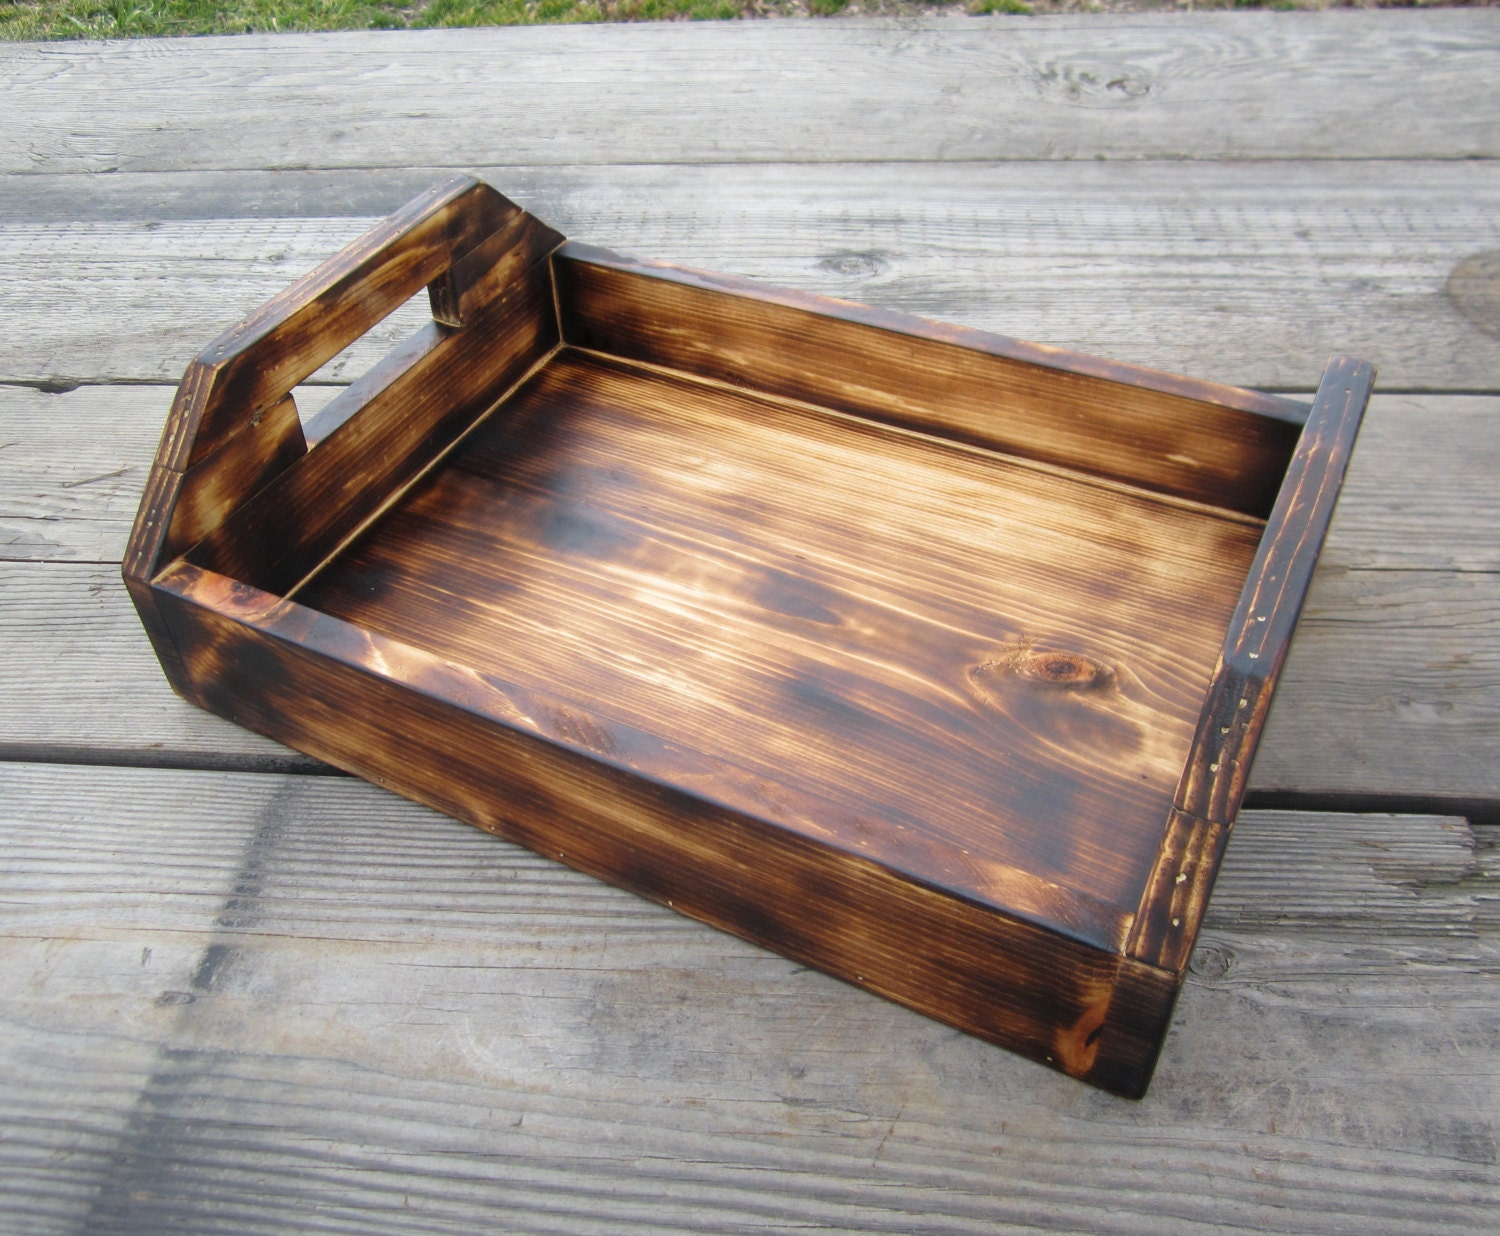 Rustic Kitchen Accessories Wood Serving Tray Rustic Kitchen Lodge Decor Country